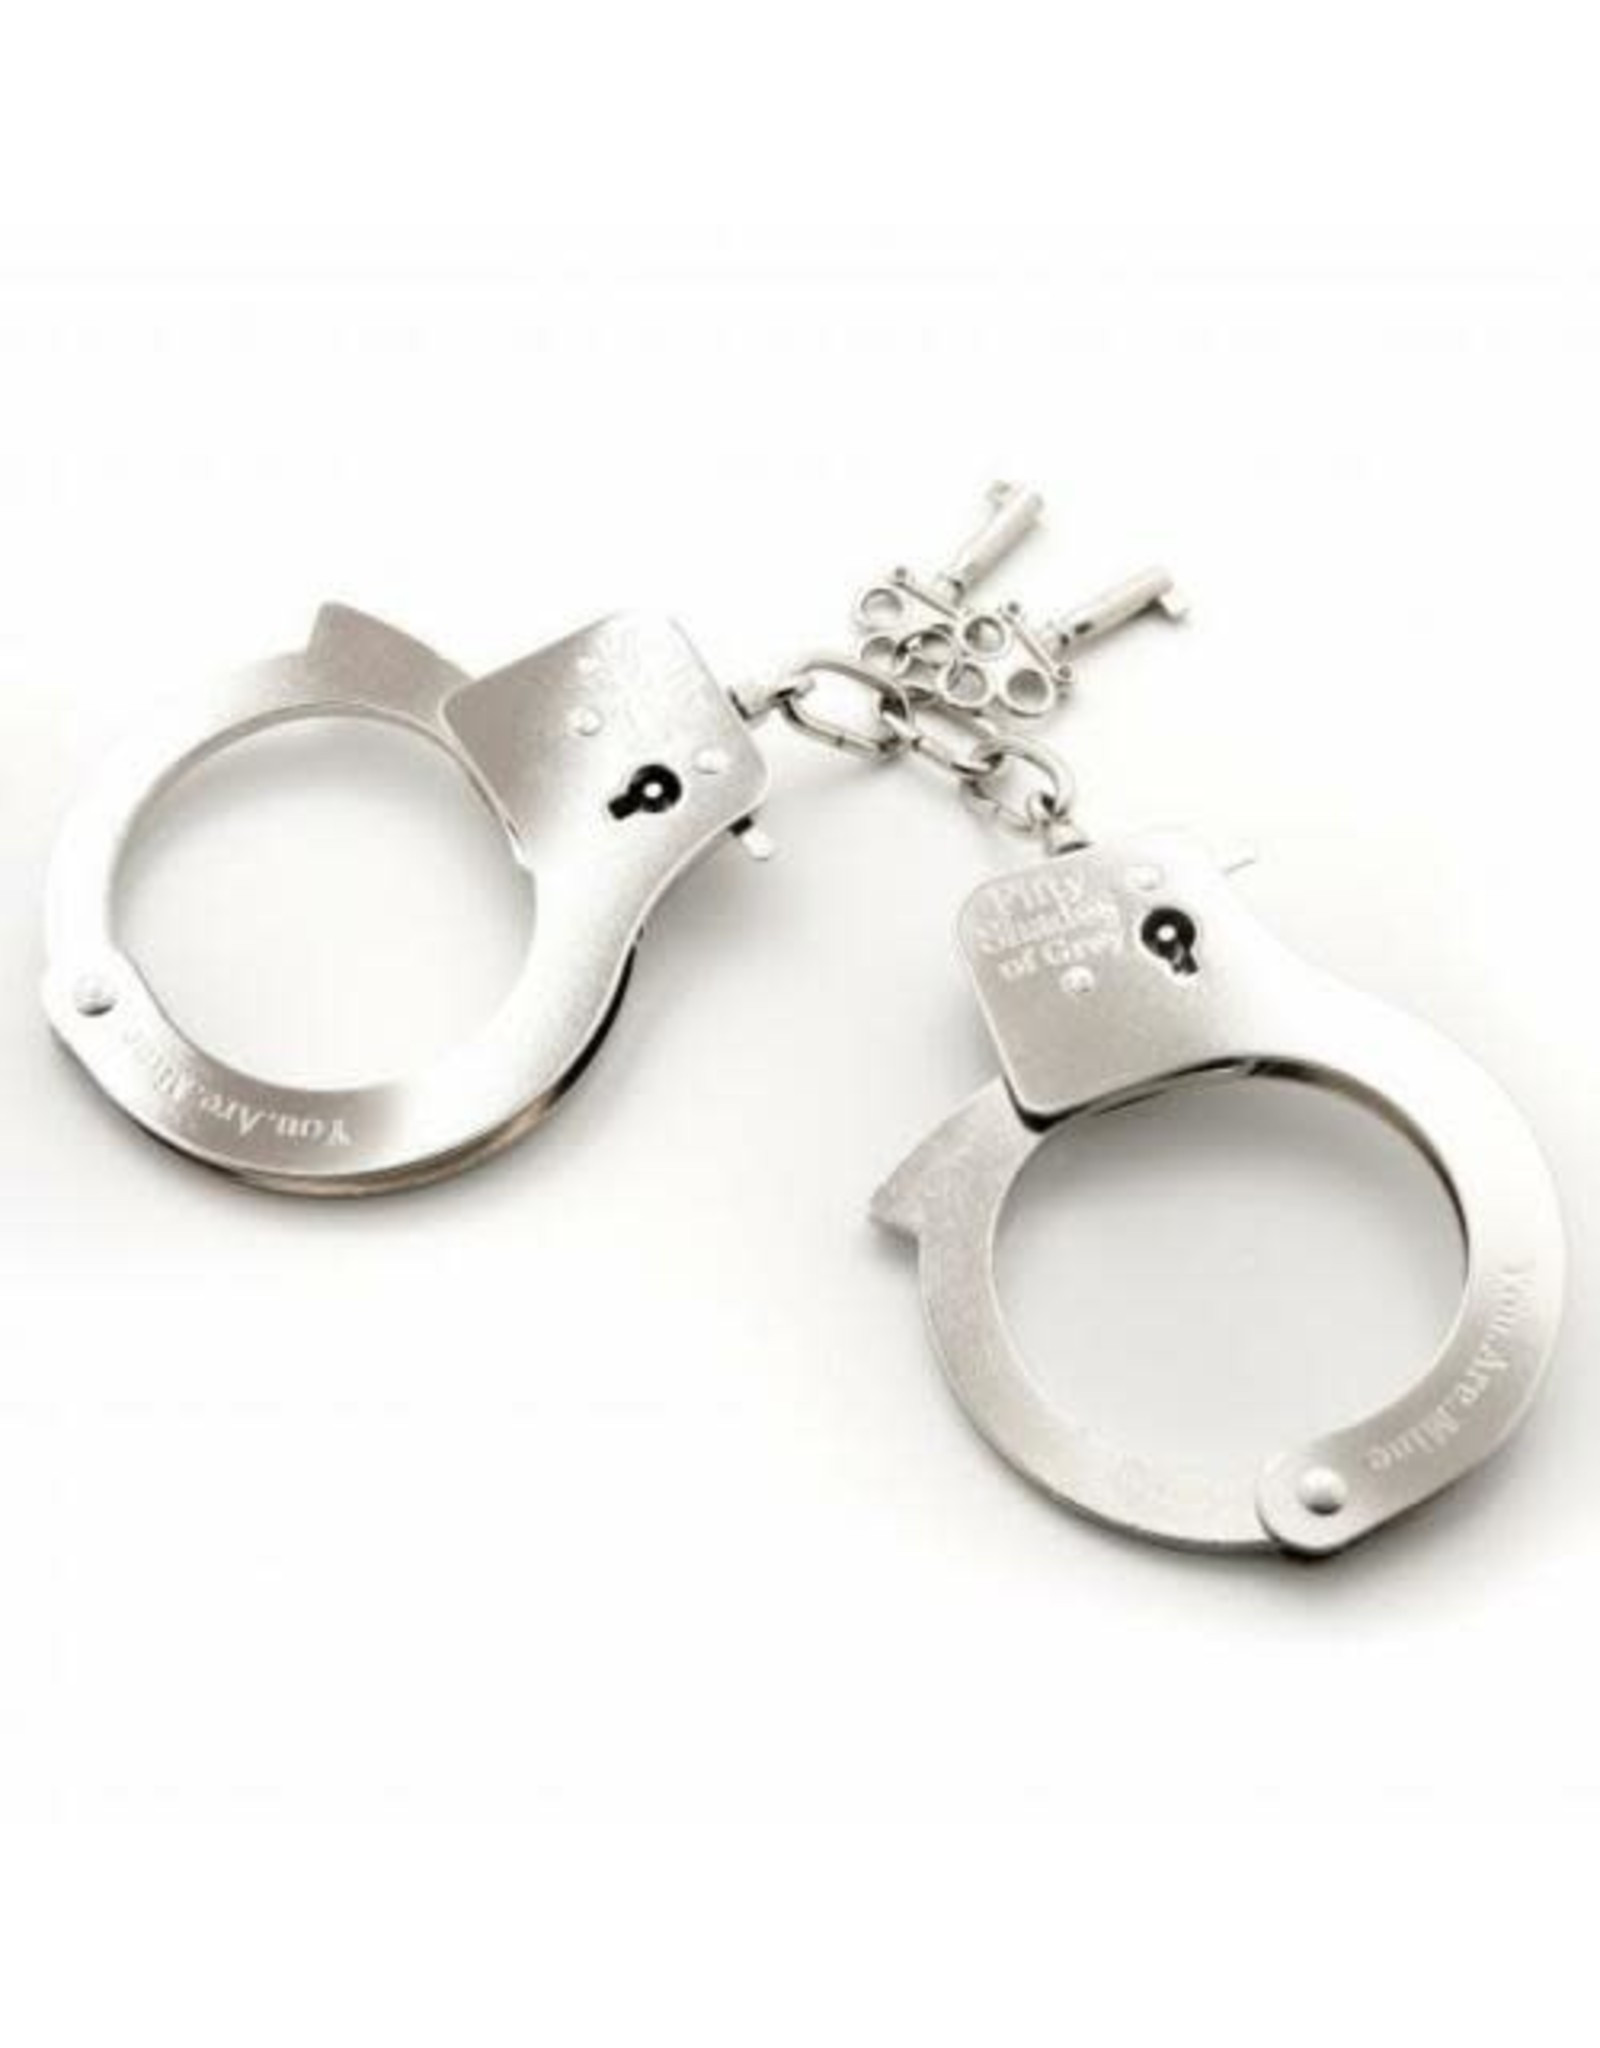 50 SHADES YOU ARE MINE CUFFS